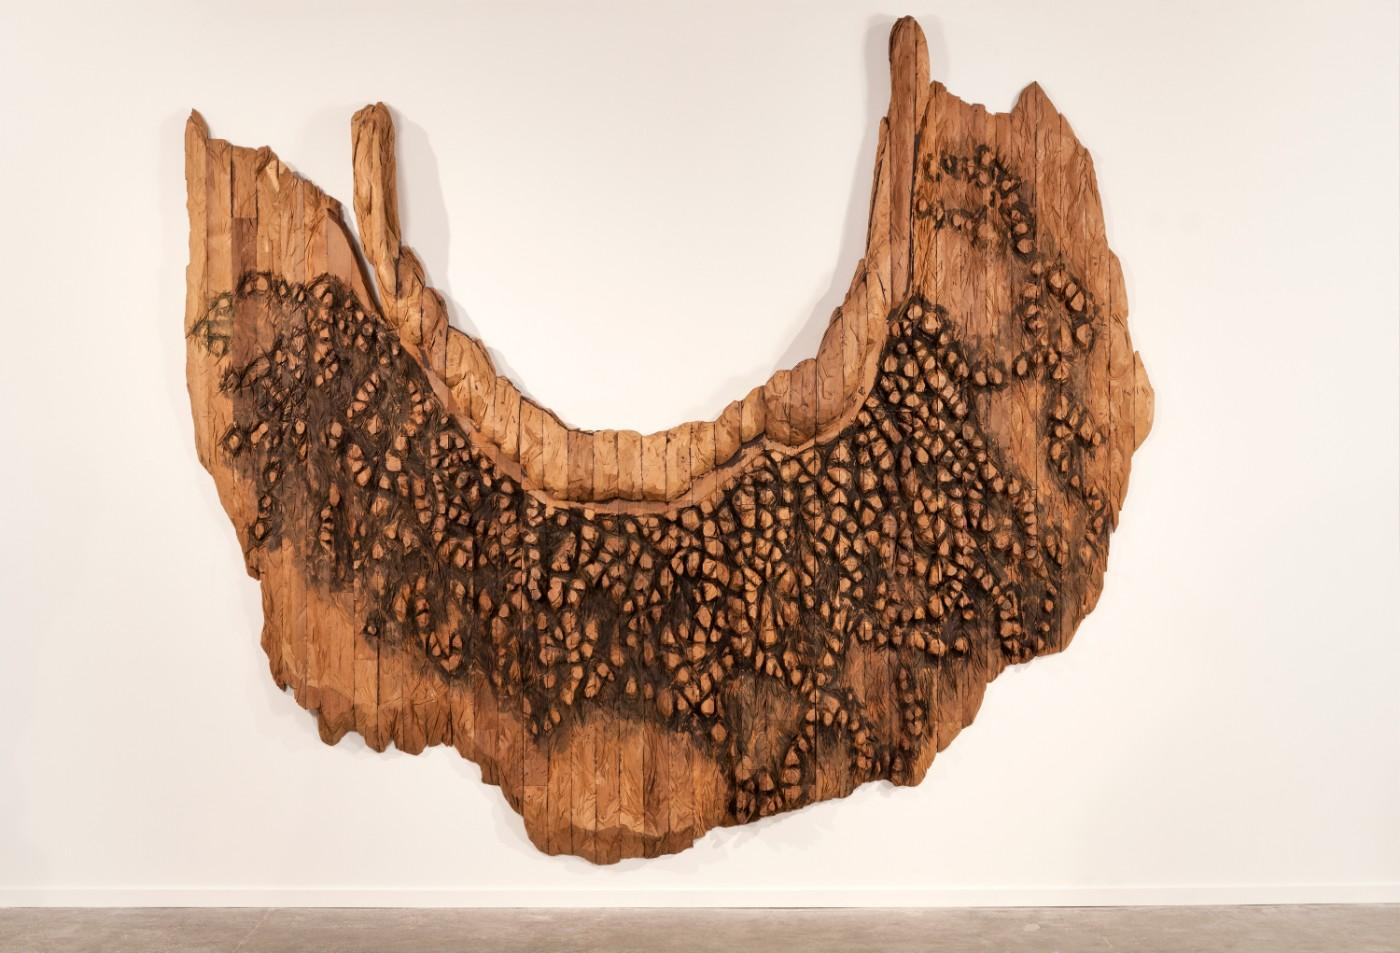 Ursula von Rydingsvard, Collar with Dots, 2008